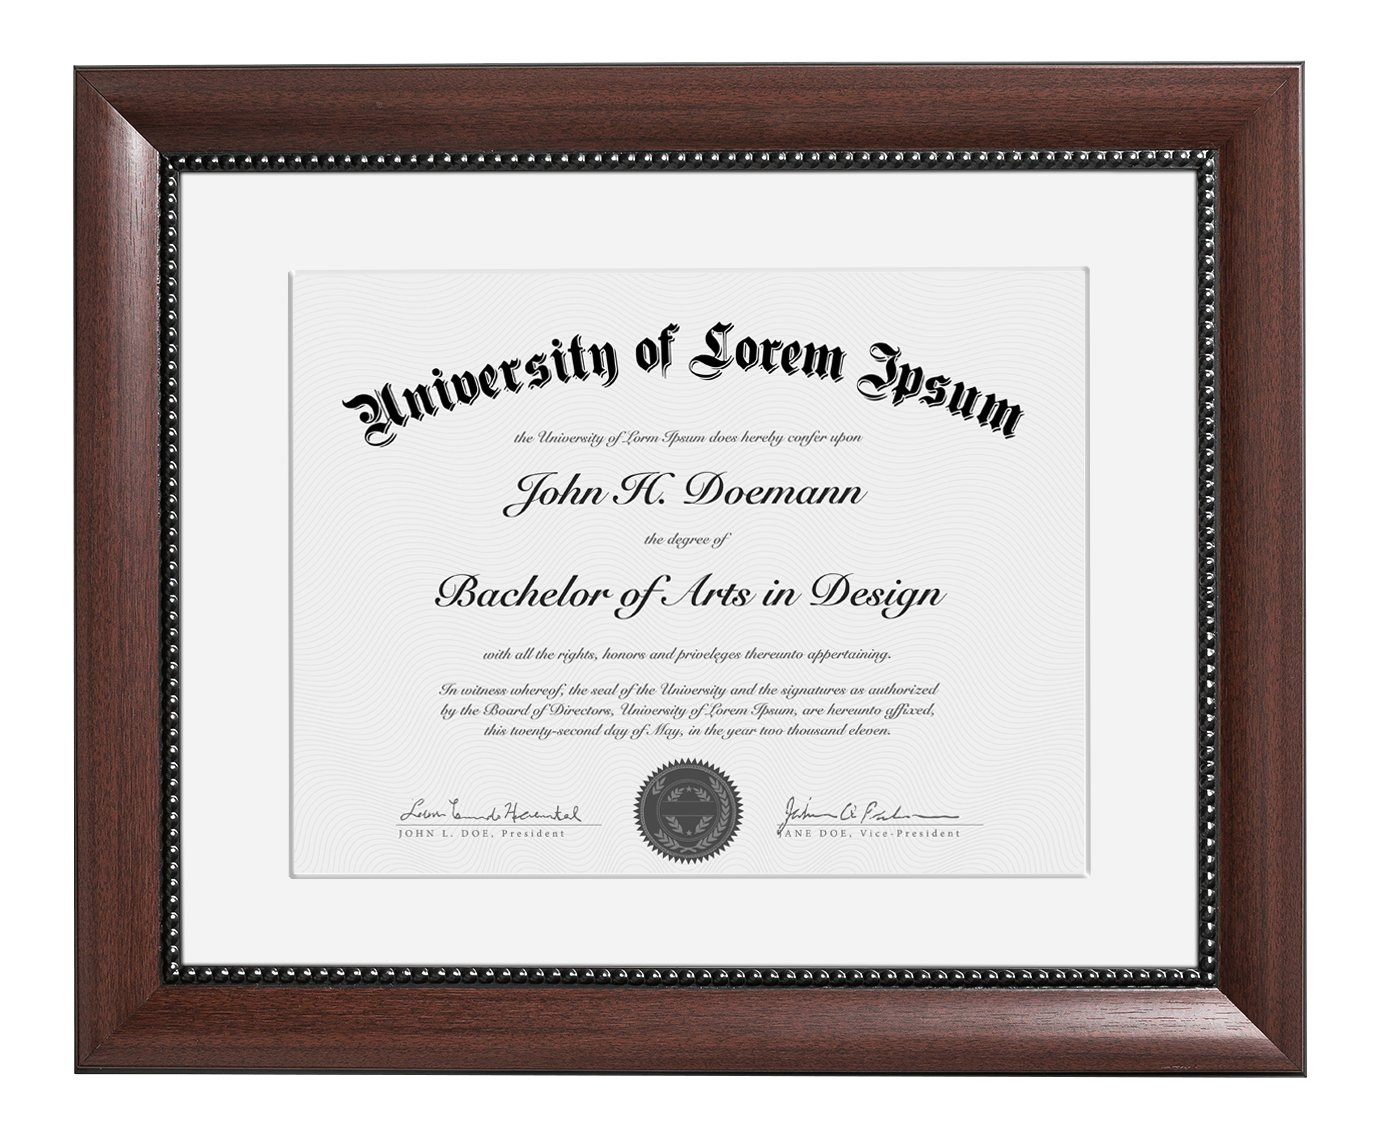 Americanflat 11x14 Mahogany Document Frame - Made to Display Certificates 8.5x11 with Mat and 11x14 without Mat, Classic Style, Mahogany Brown - Document Frames, Certificate Frames, Diploma Frames